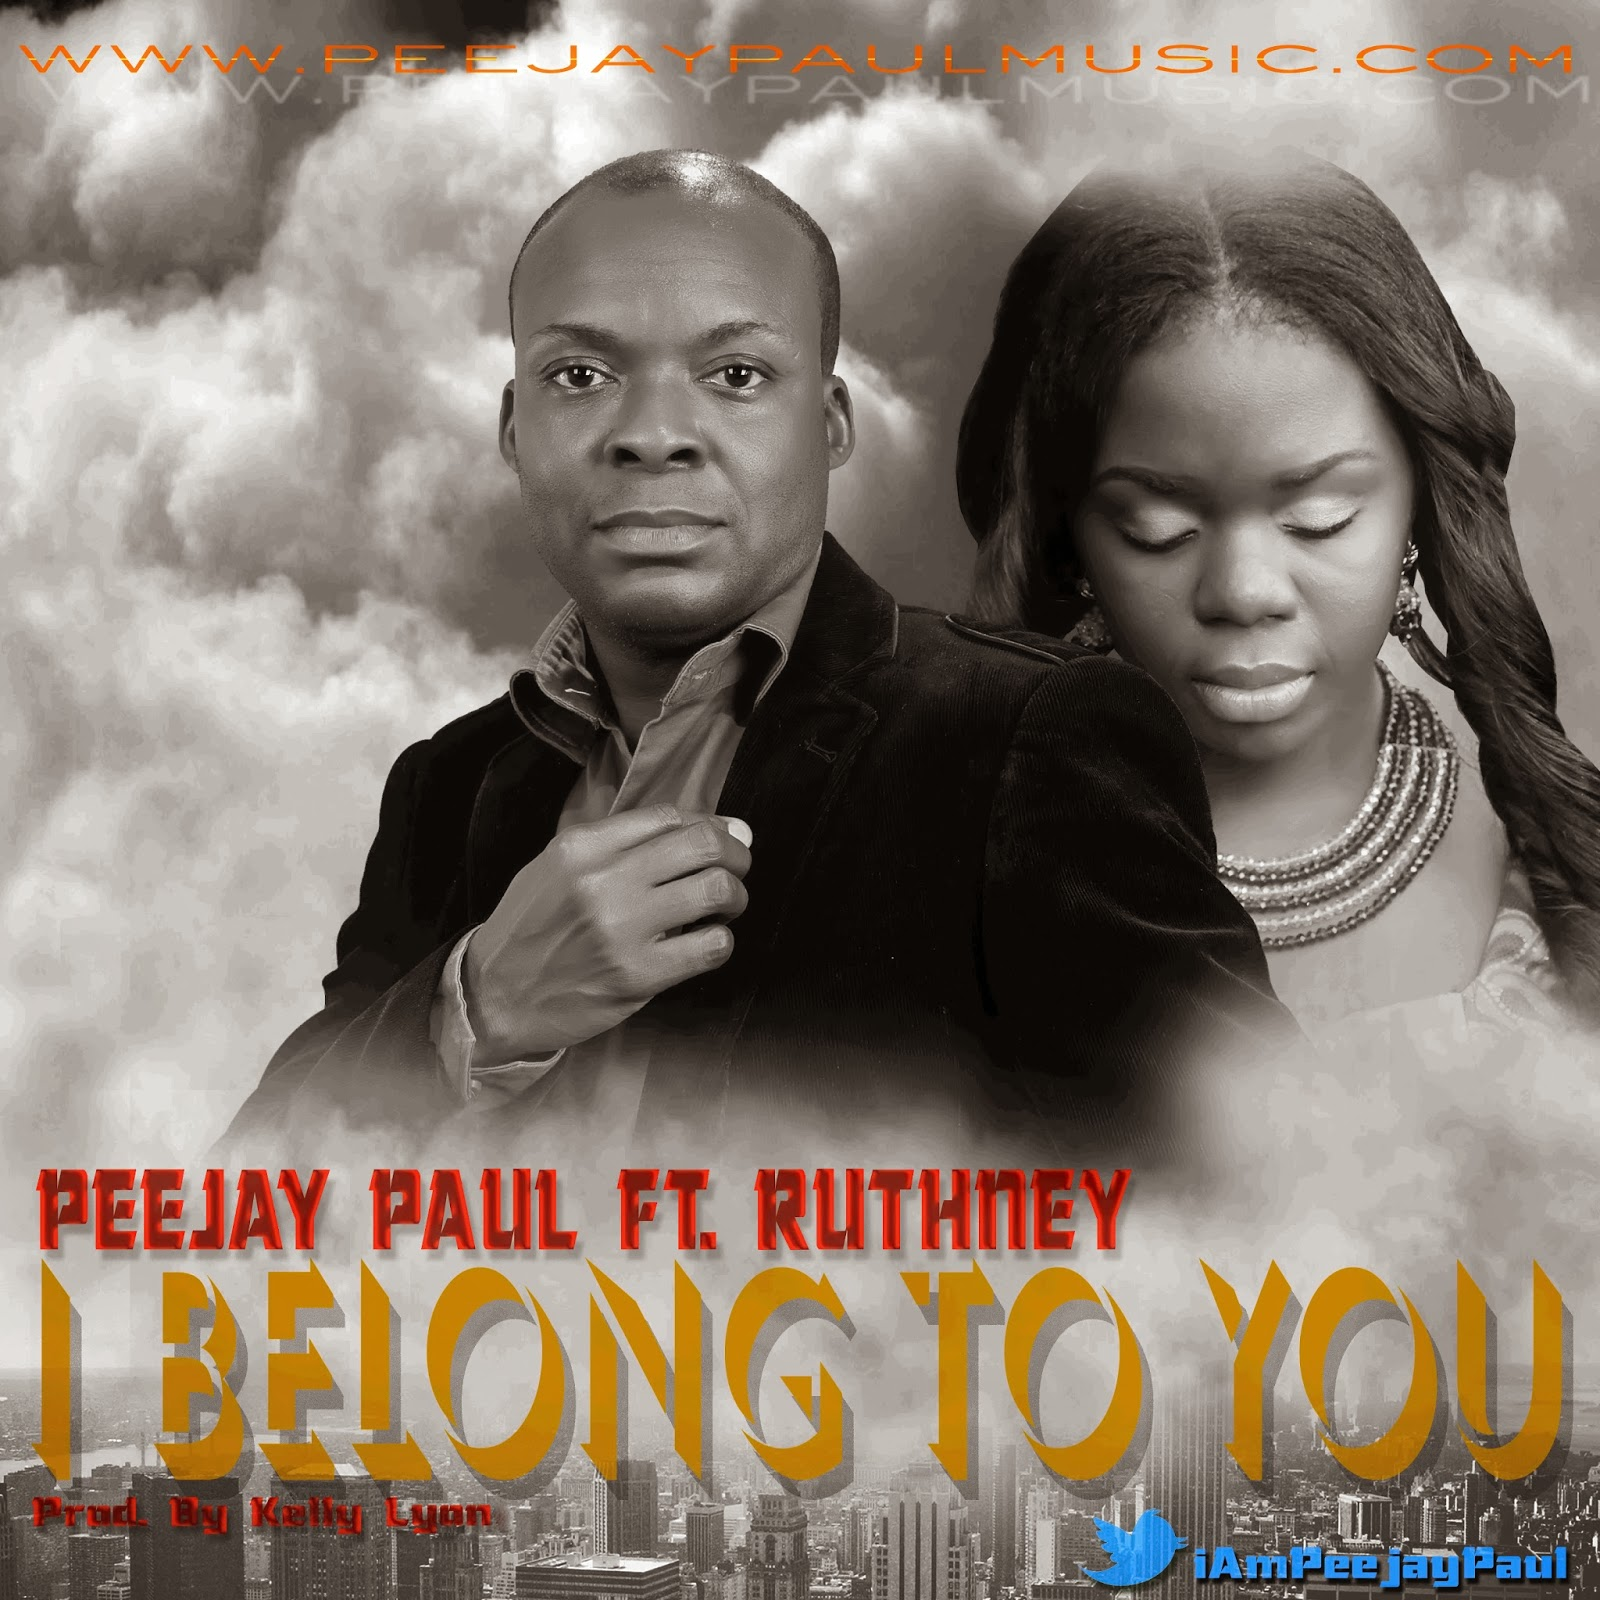 Music-I belong to you by Peejaypaul ft Ruthney - theblow360